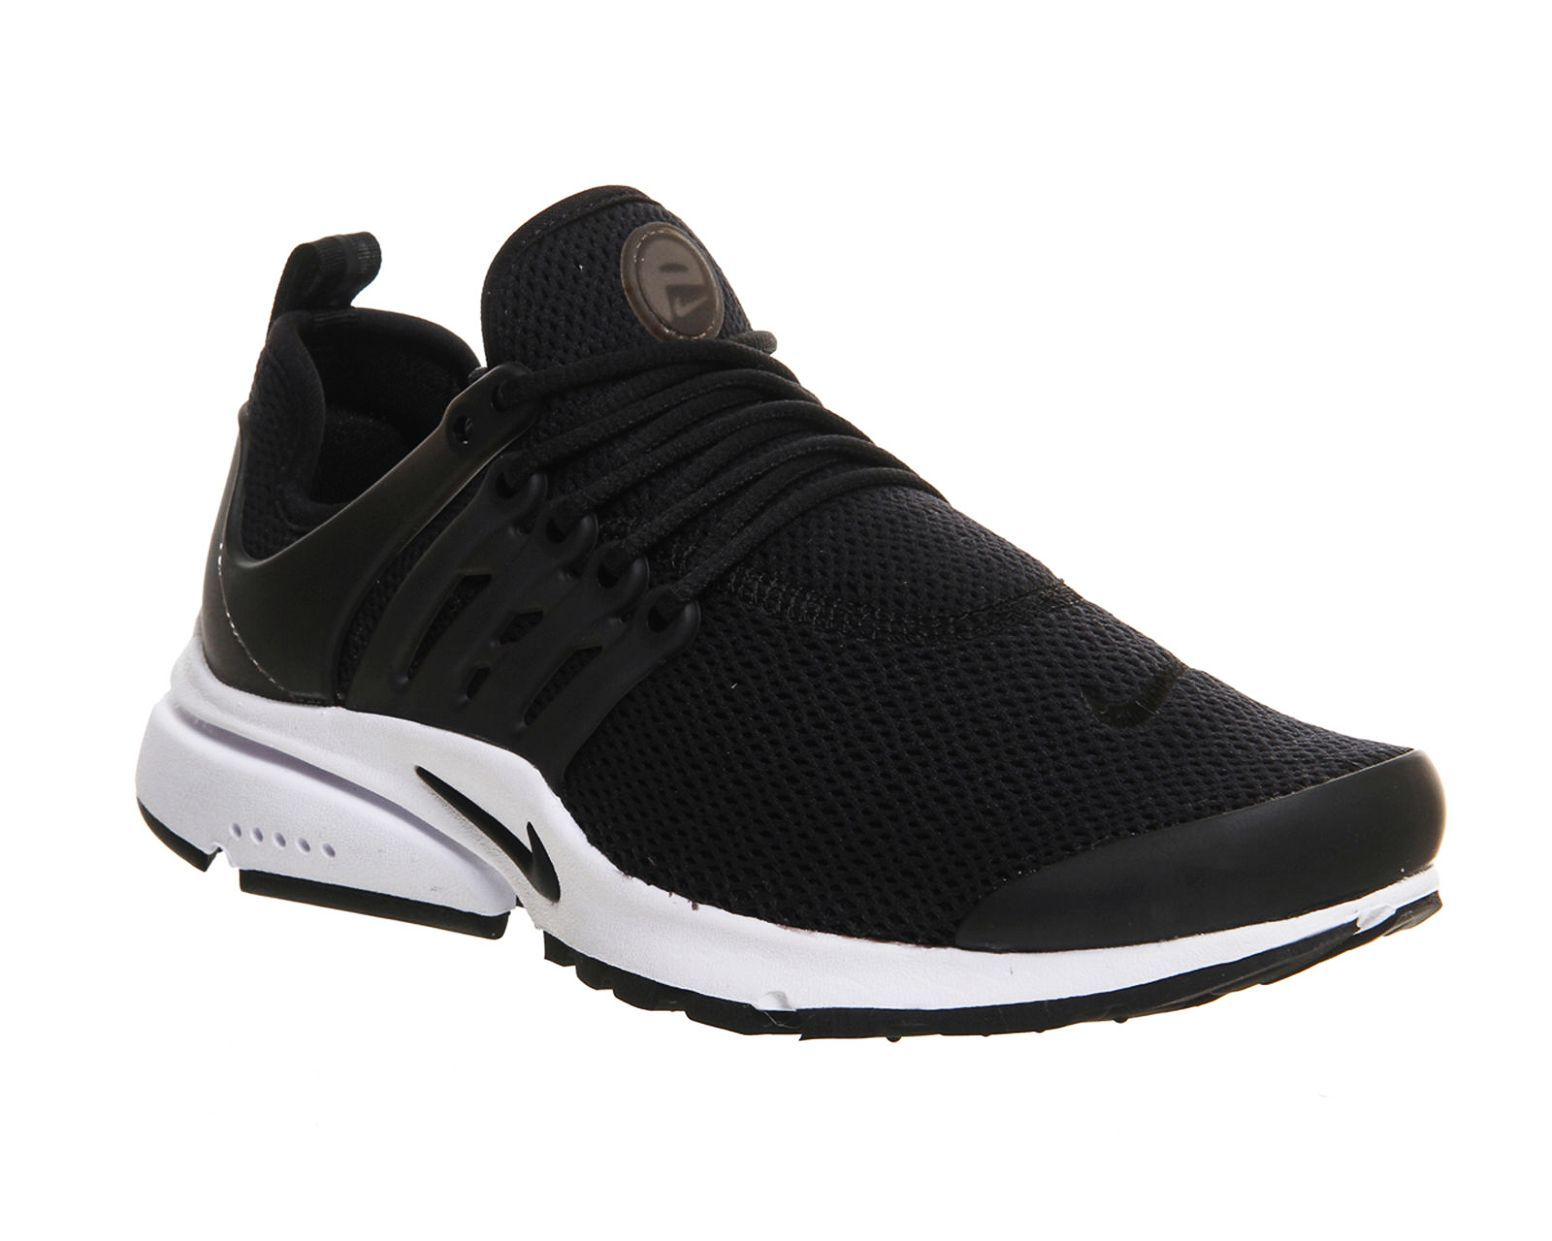 6b69245e26ac usa nike womens running shoes are designed with innovative features and  technologies to help you run